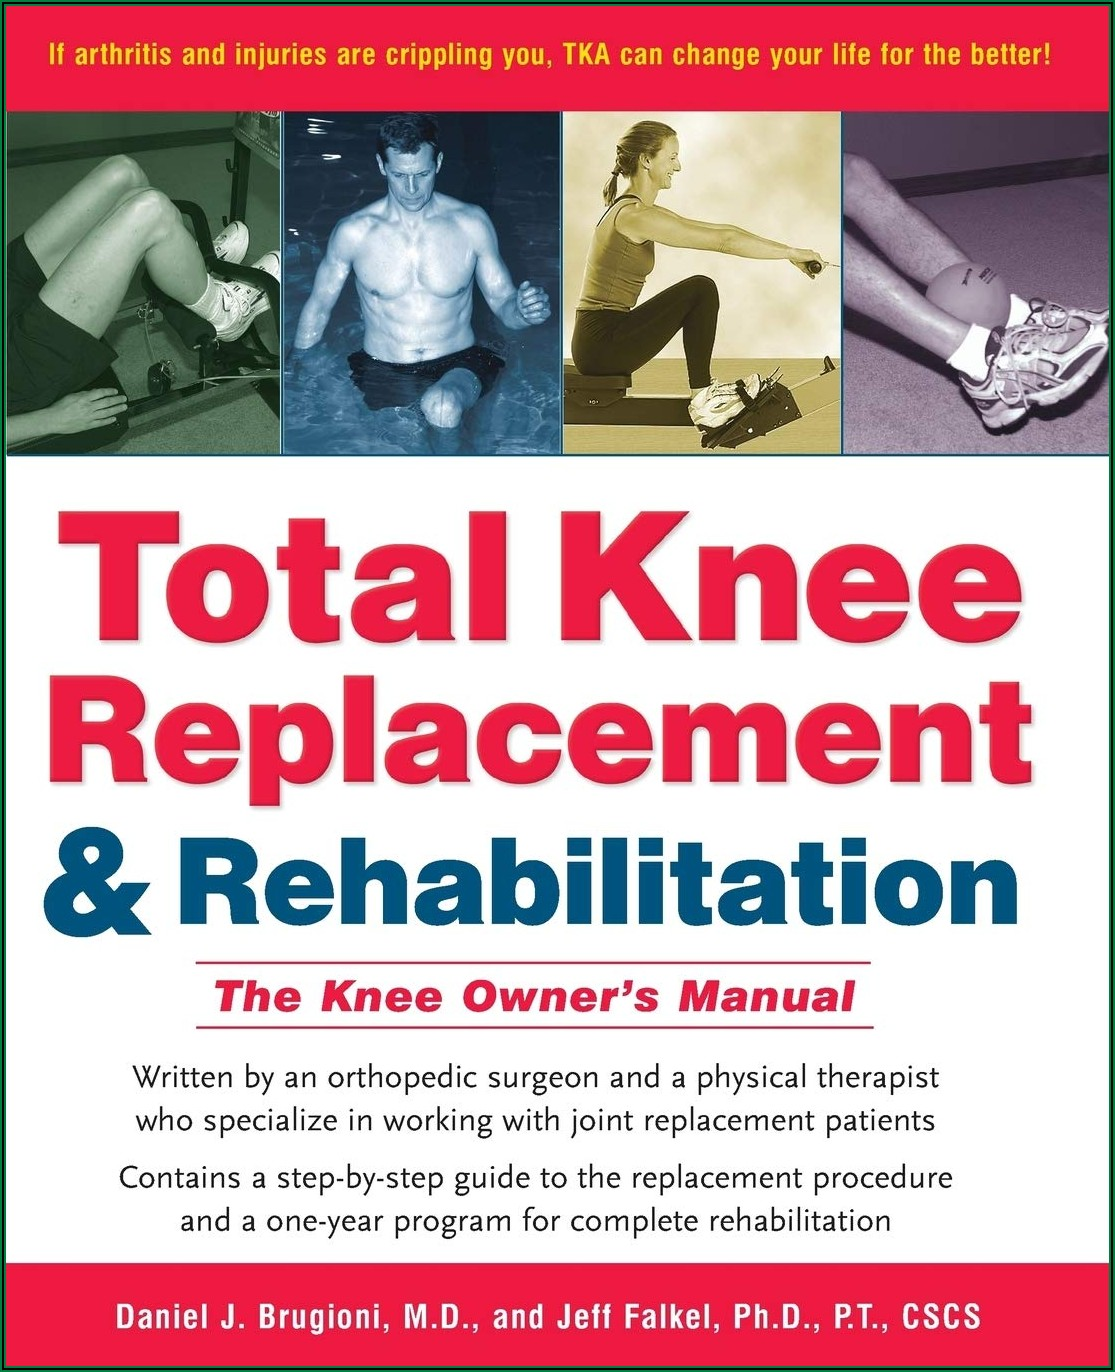 Partial Knee Replacement Rehab Timeline